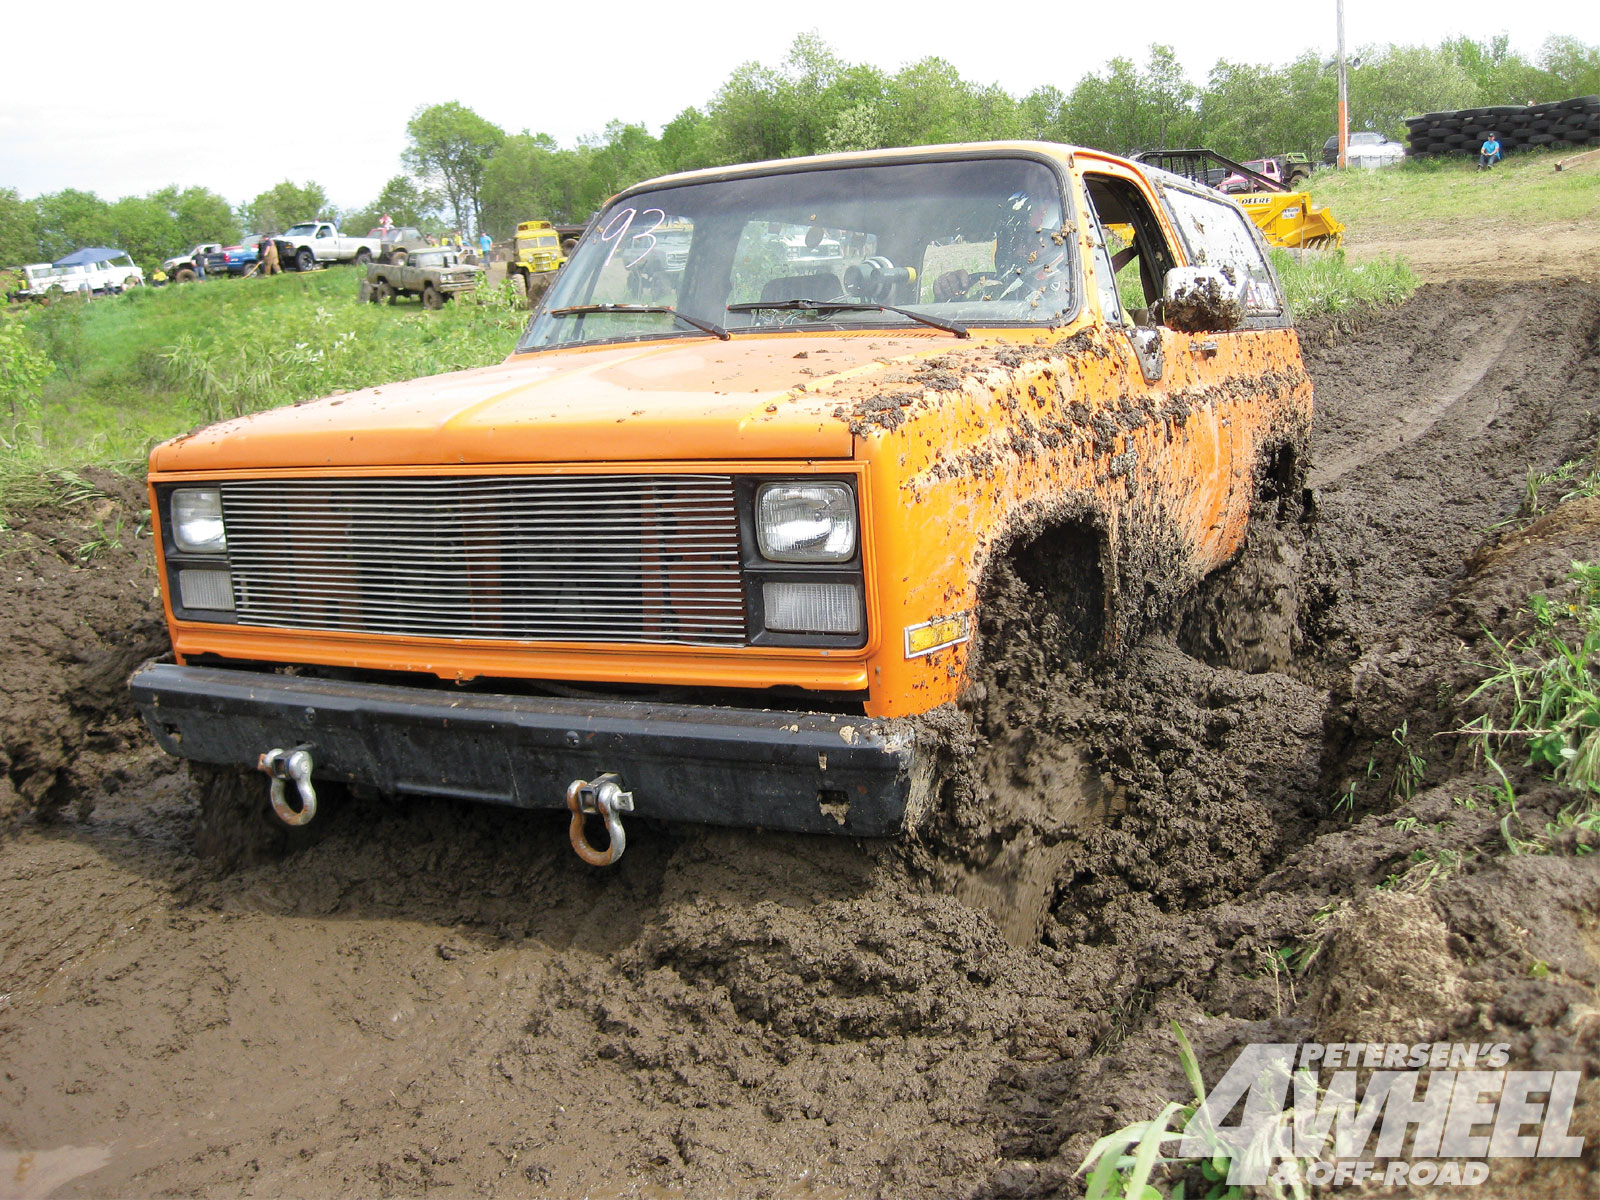 131 1103 15 o+131 1103 backyard mud boggin+orange blazer